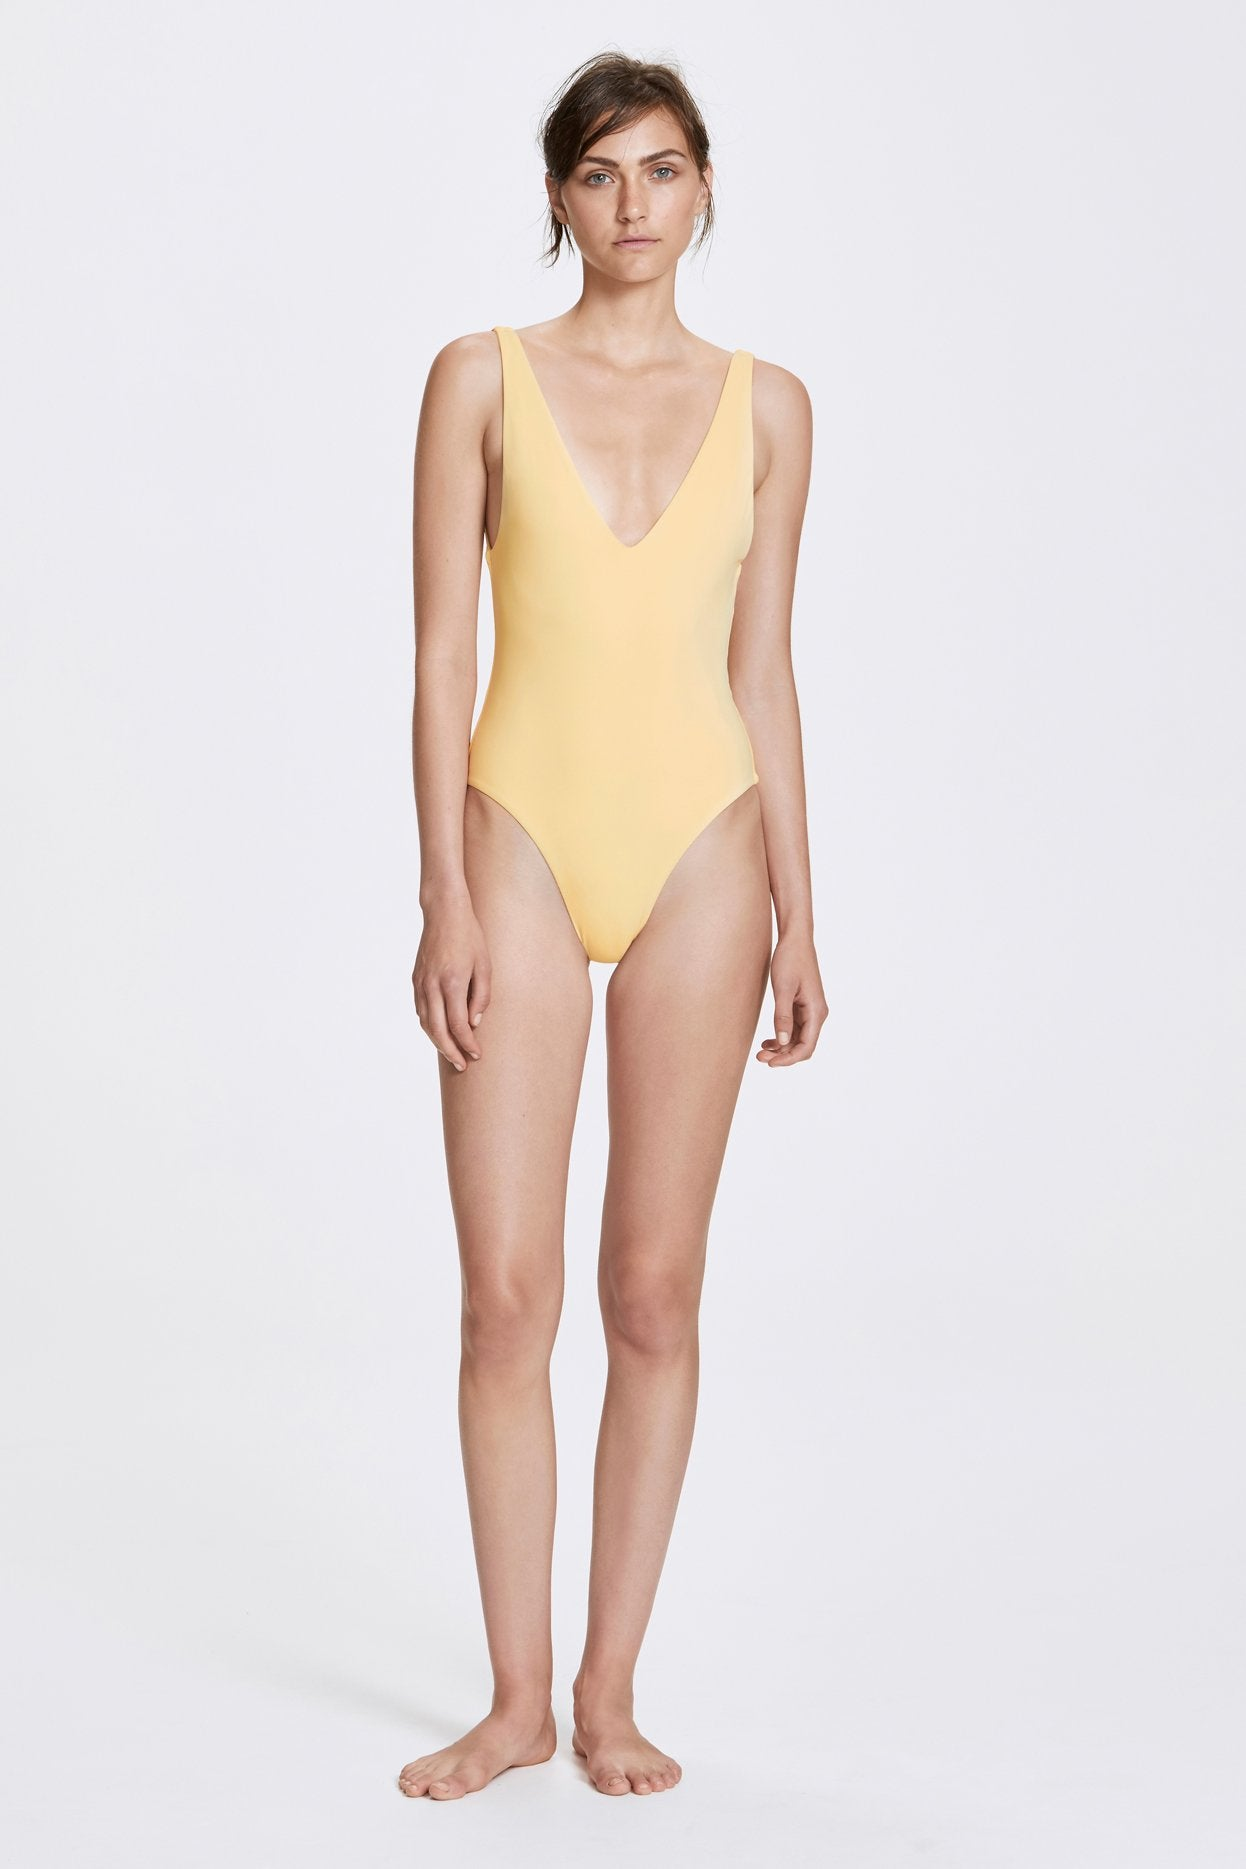 Her Line Ester Swimwear One Piece Butter Yellow Front